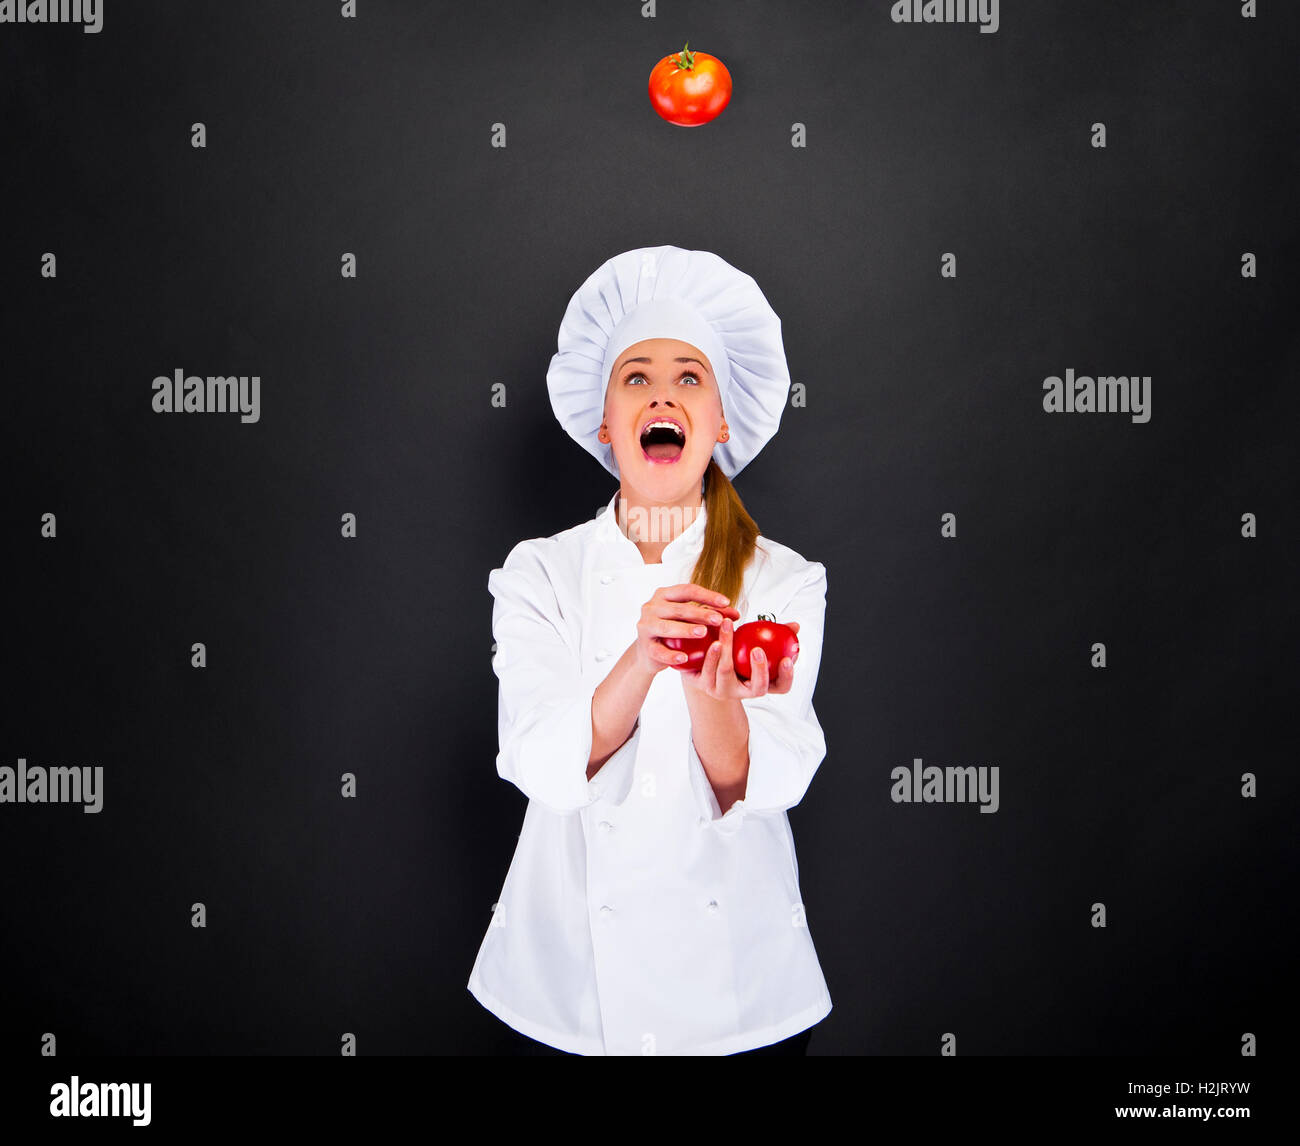 Portrait of young woman chef with tomatos juggle - Stock Image